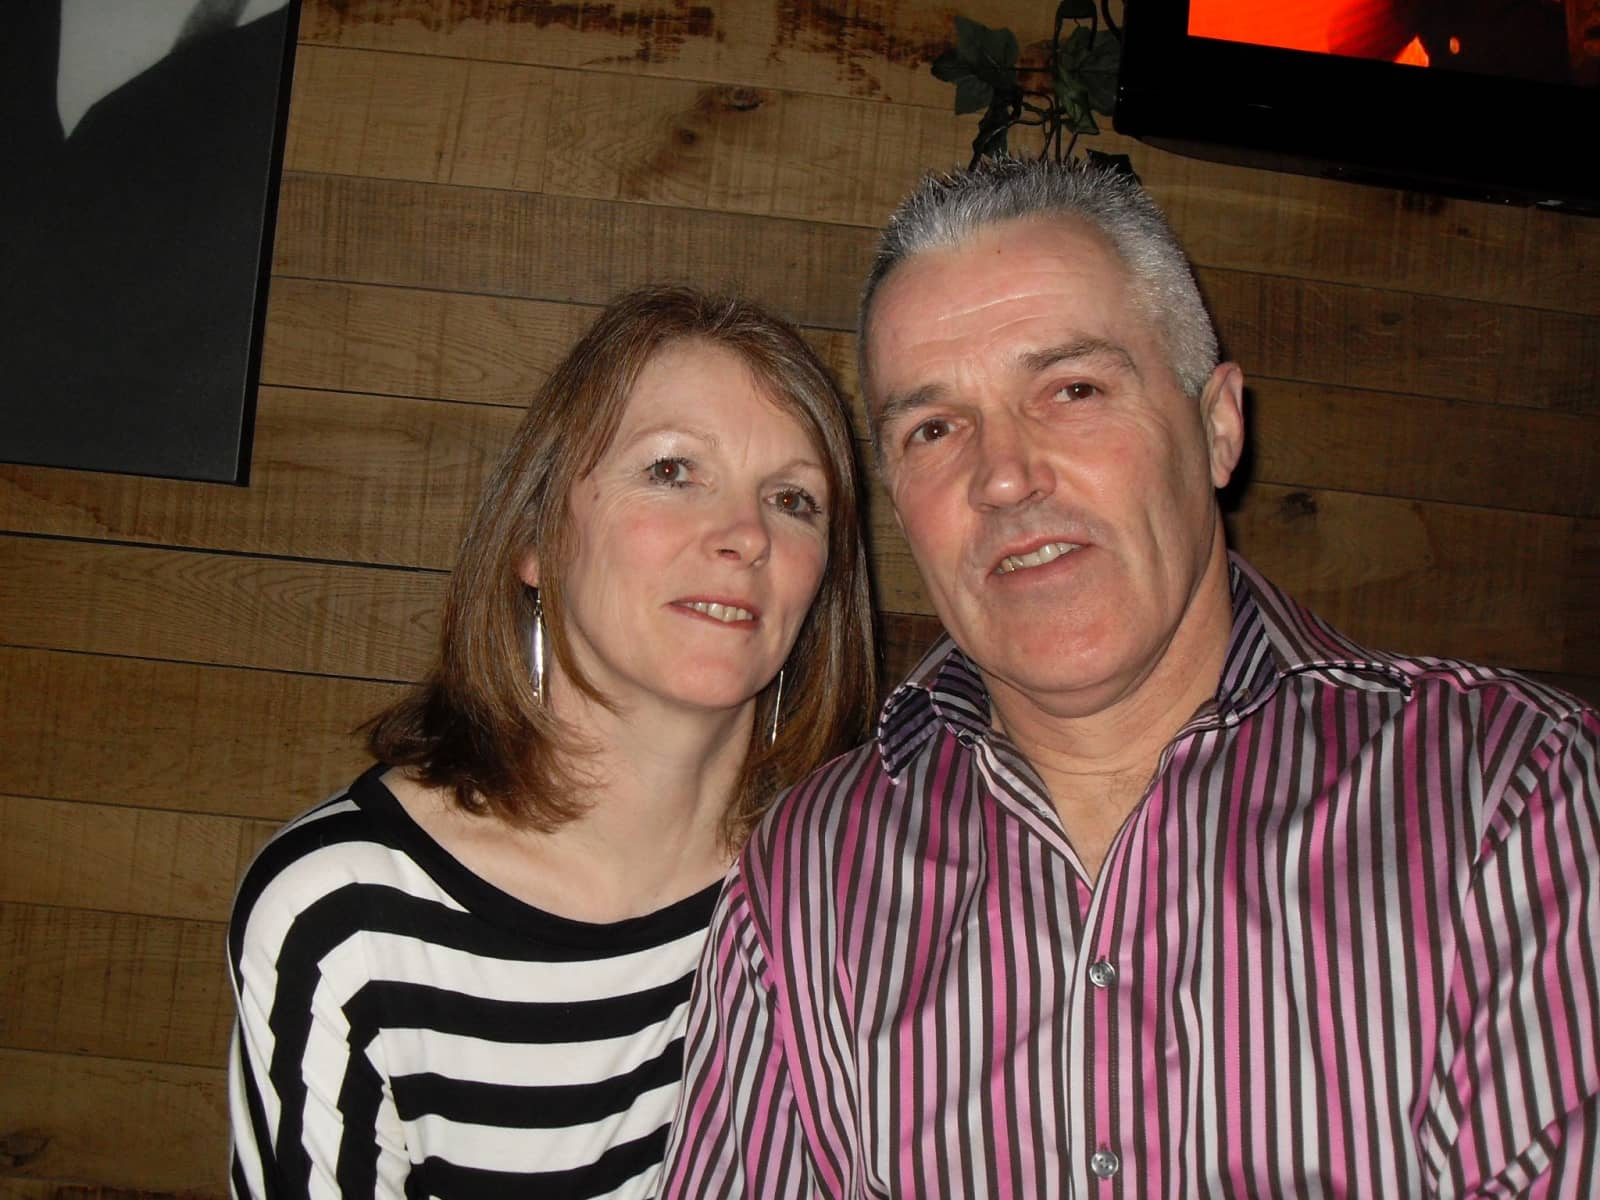 Gaynor & David from Wilmslow, United Kingdom